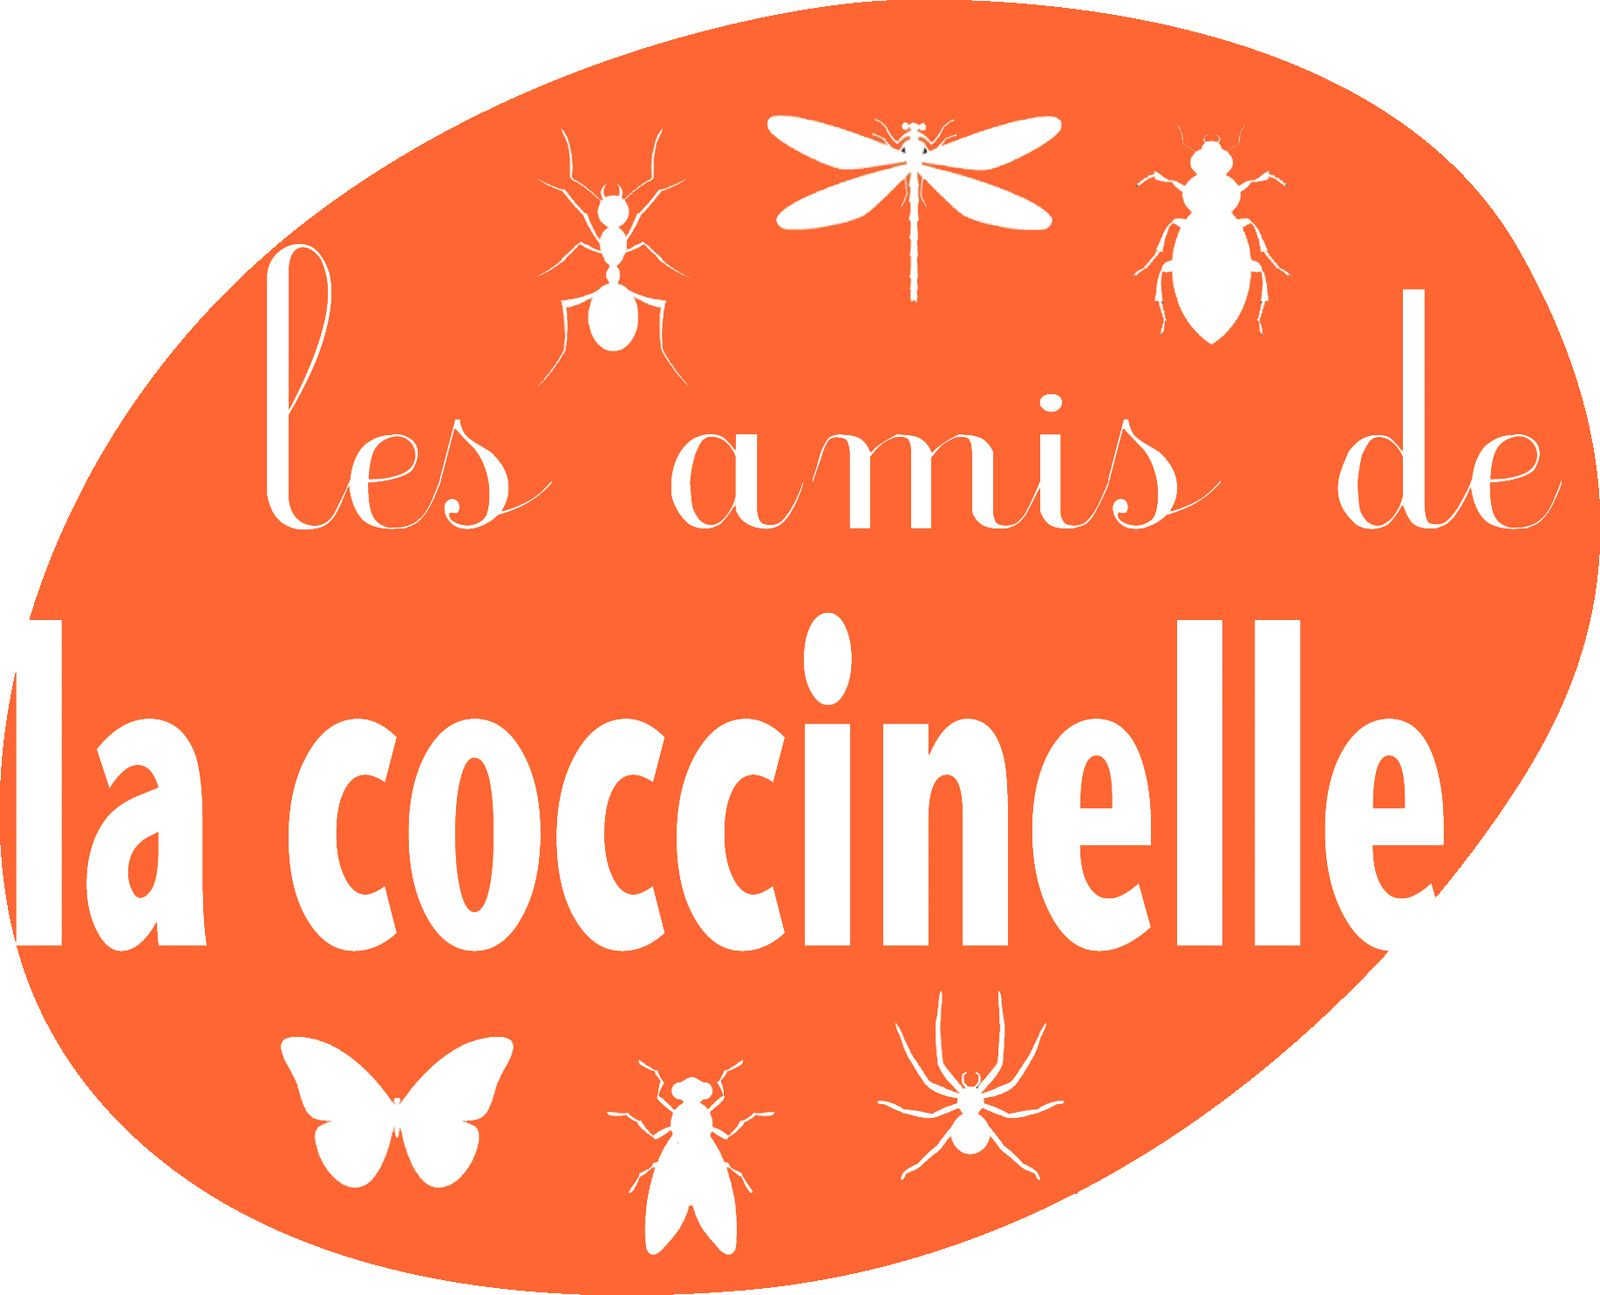 les amis de la coccinelle prennent leur envol colo at home le blog de la coccinelle 7 points. Black Bedroom Furniture Sets. Home Design Ideas